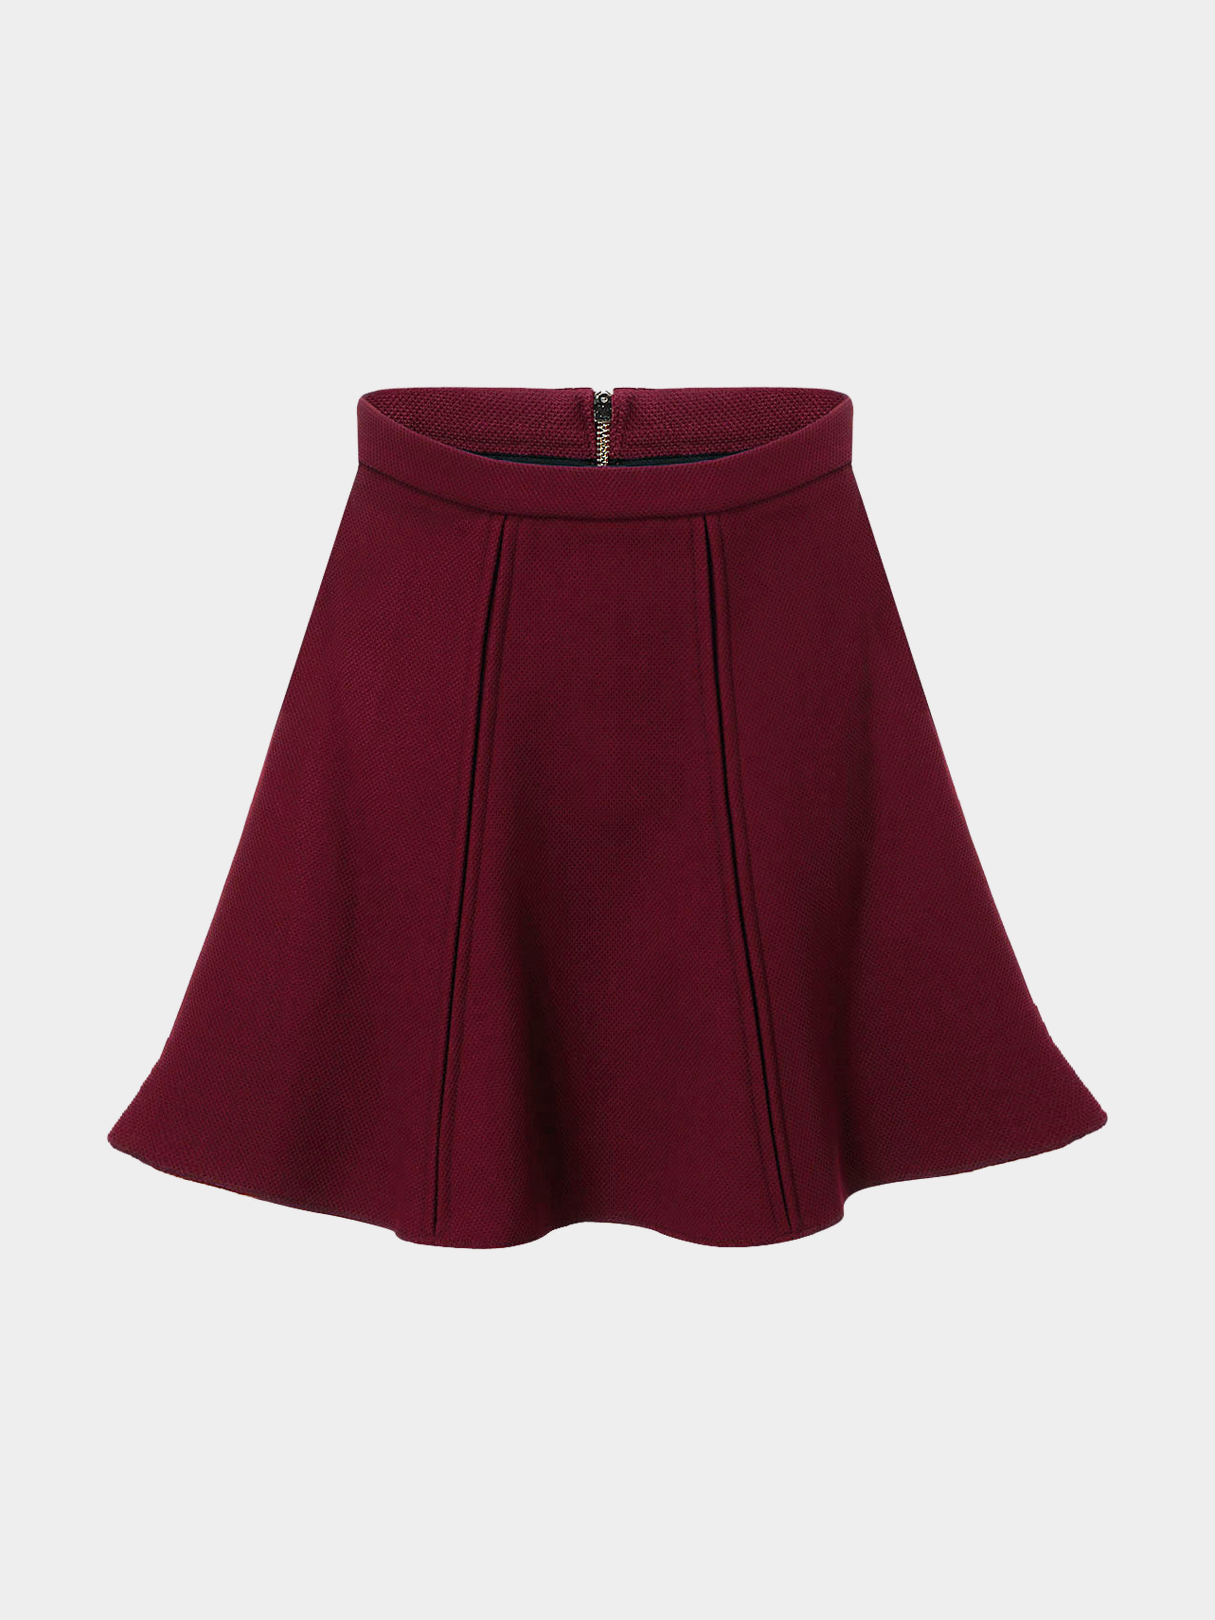 High-rise Waist Skirt in Red